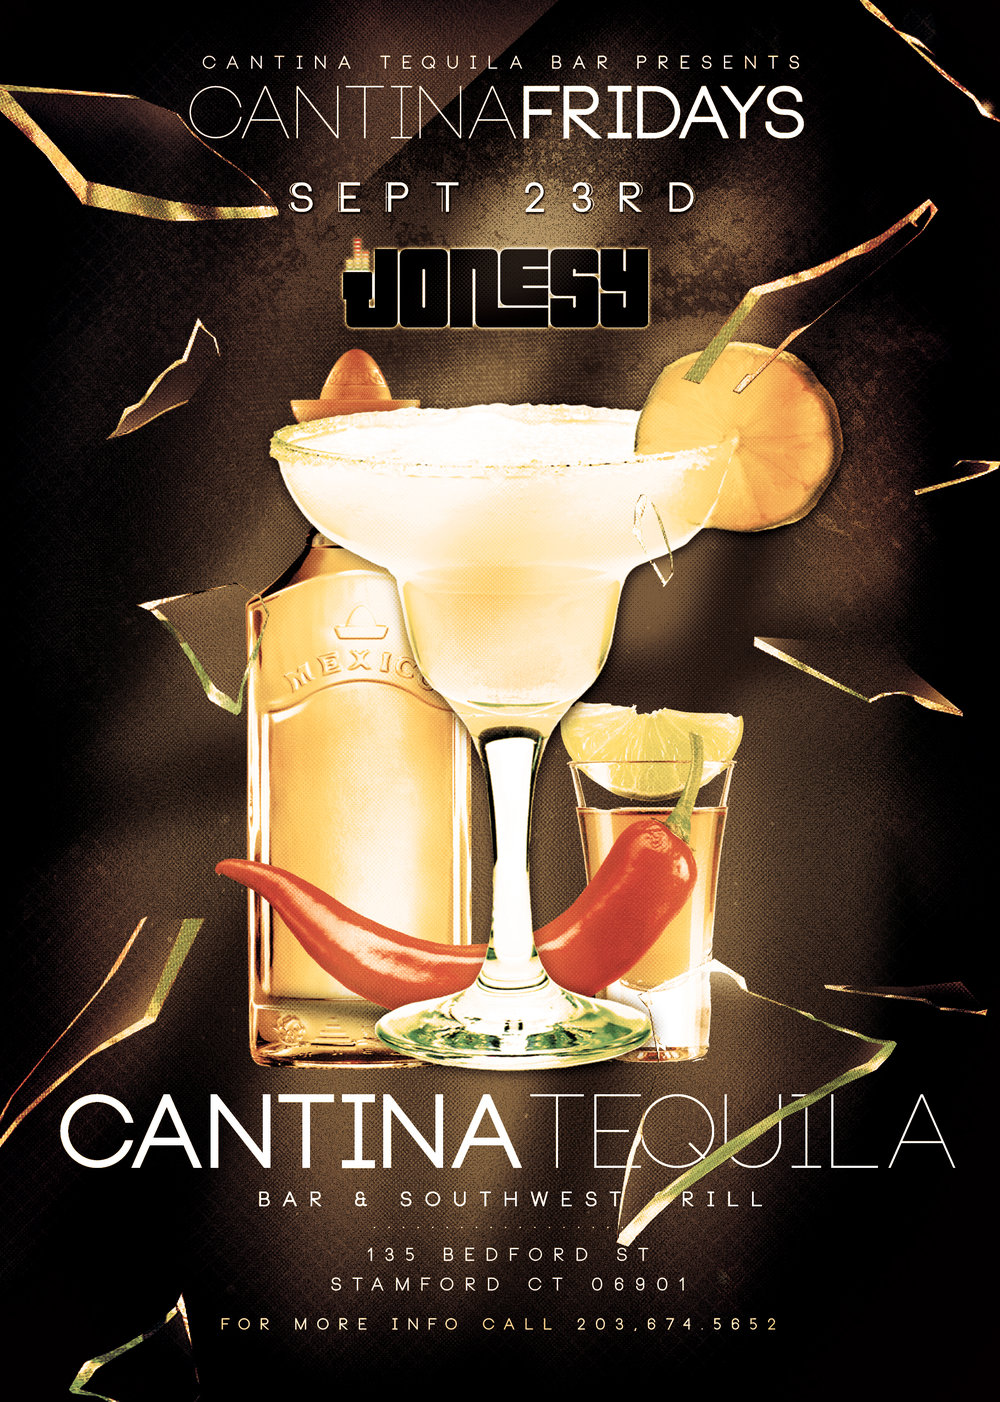 FRIDAY, SEPTEMBER 23RD JOIN US AT CANTINA TEQUILA BAR & SOUTHWEST GRILL FOR CANTINA FRIDAYS!  MUSIC BY JONESY ALL NIGHT LONG!  HOPE TO SEE EVERYONE THERE!